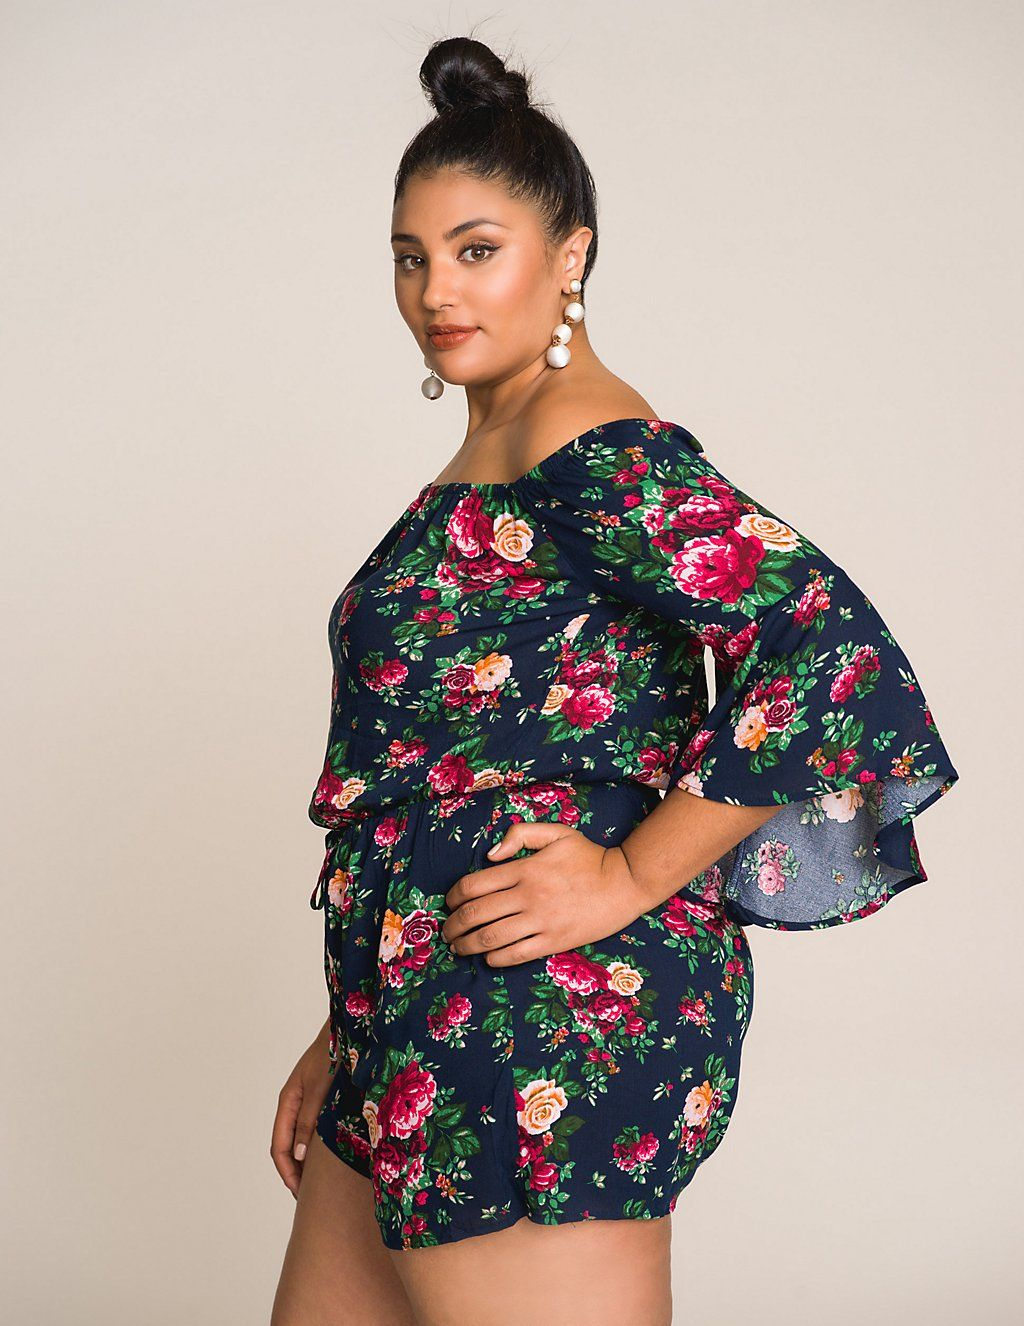 df7b990145 Plus Size Floral Off The Shoulder Romper in 2019 | jump suit ...